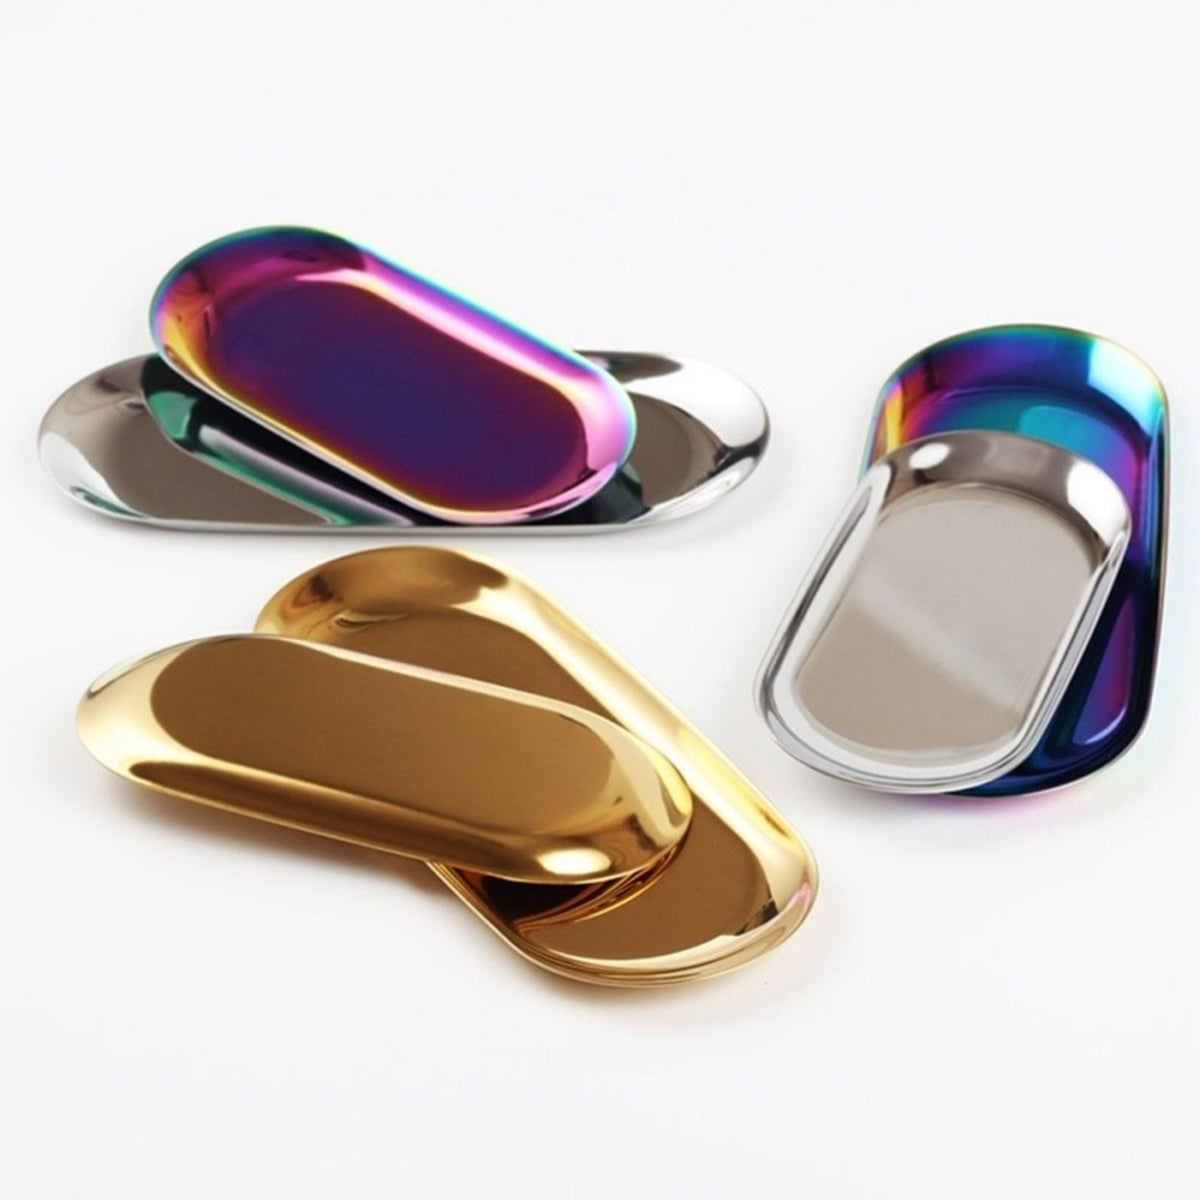 Colorful Metal Jewelry Display Trays